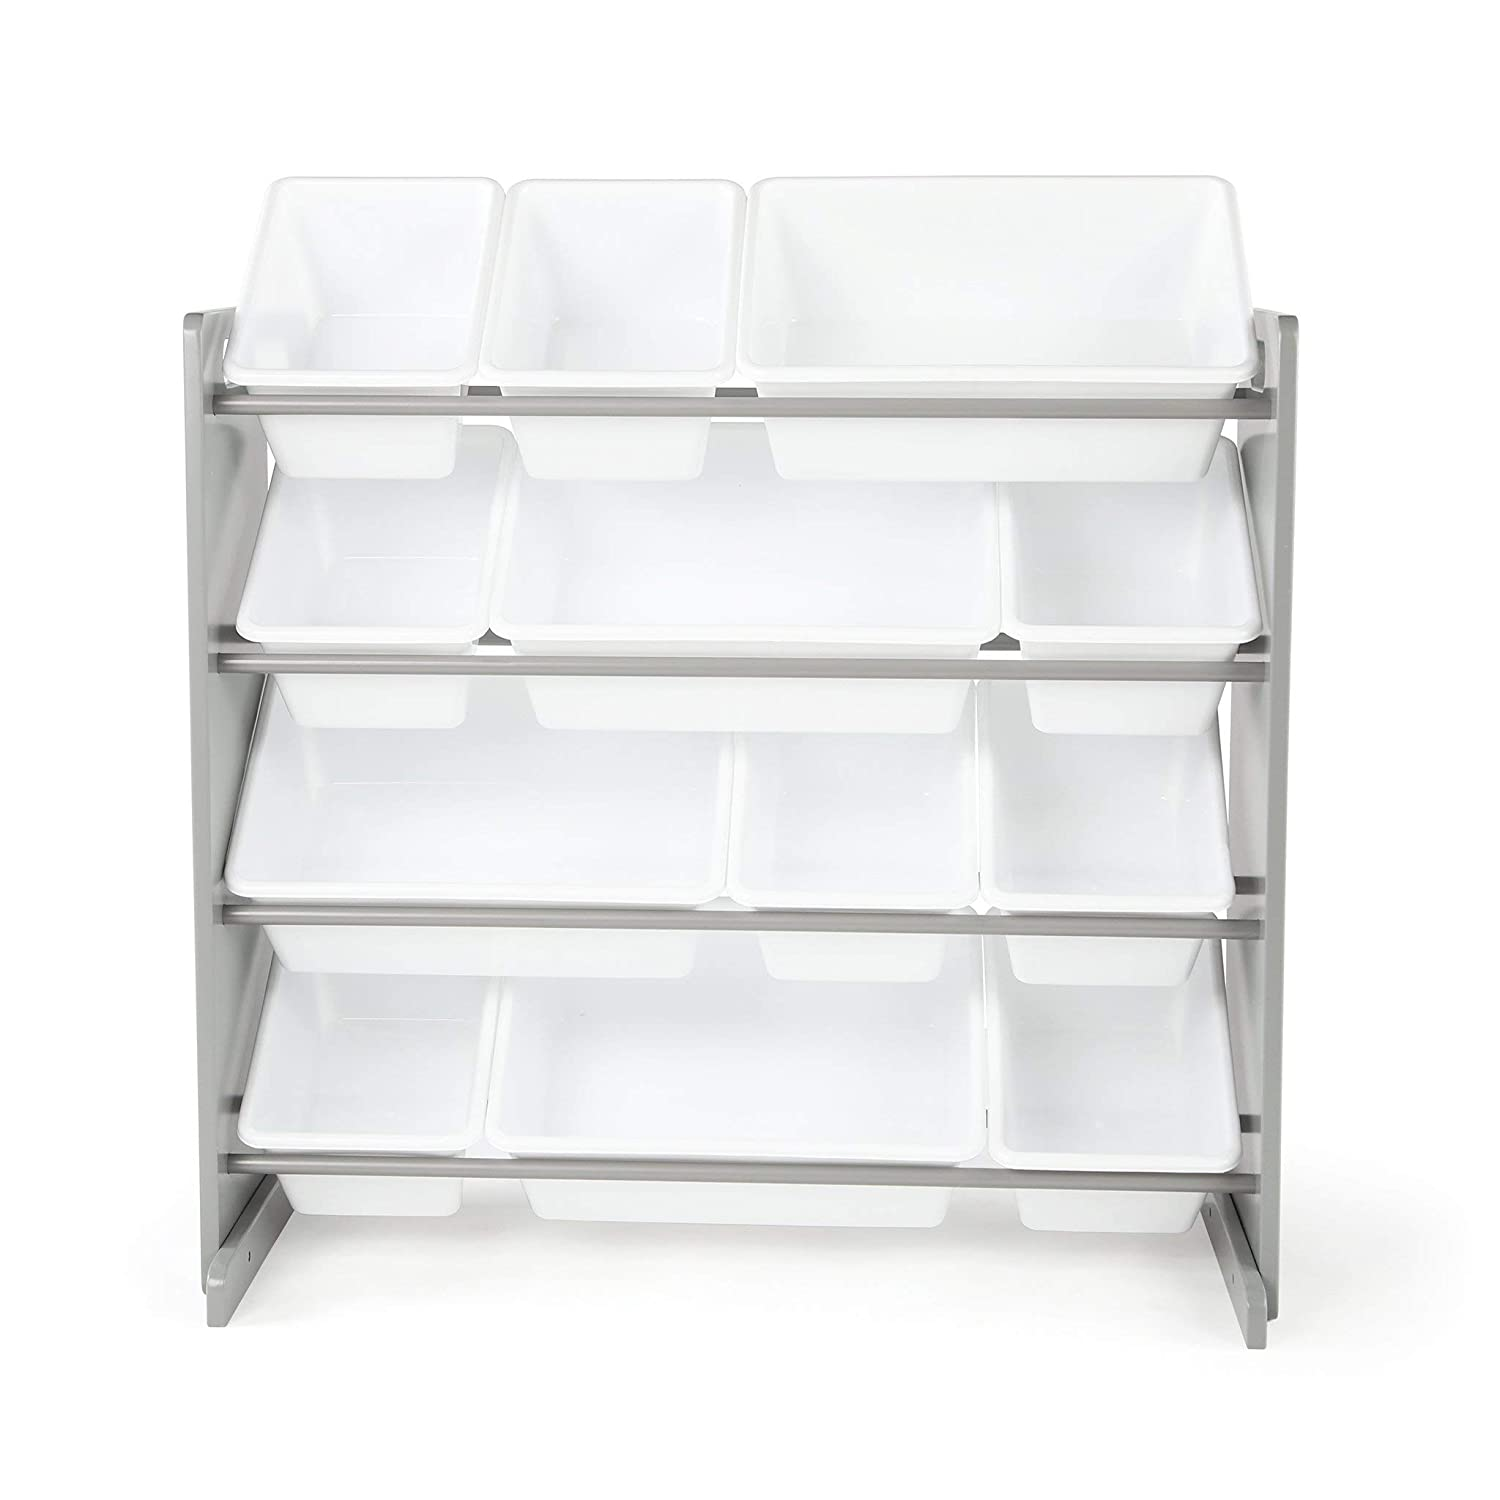 Tot Tutors Kids' Toy Storage Organizer with 12 Plastic Bins, Grey/White (Inspire Collection)